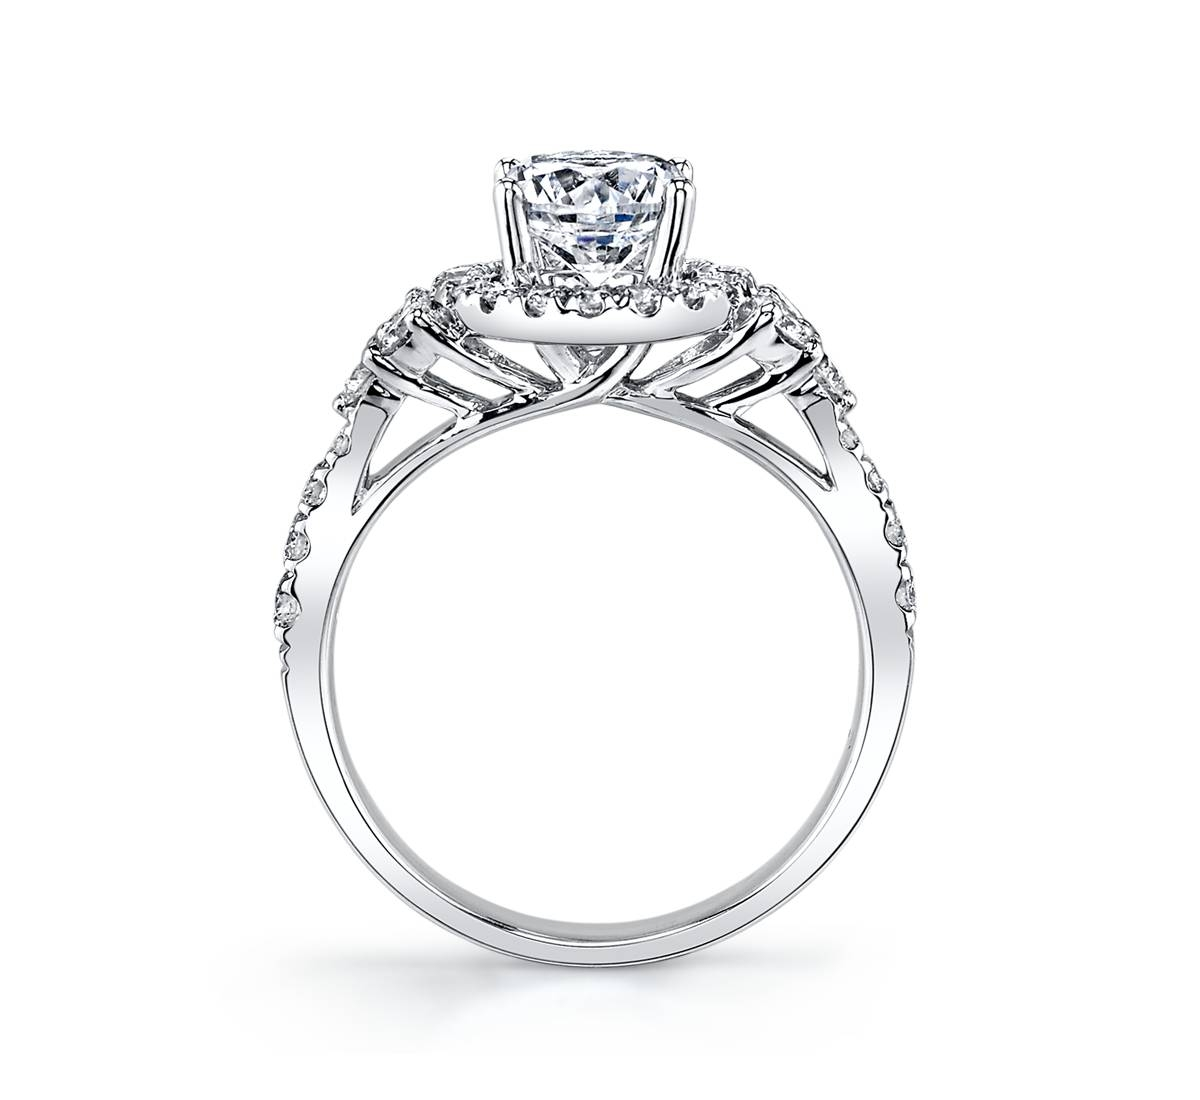 14K White Gold Halo Diamond Engagement Ring Setting 5/8 Cttw Regarding 5 Diamond Engagement Rings (View 1 of 15)